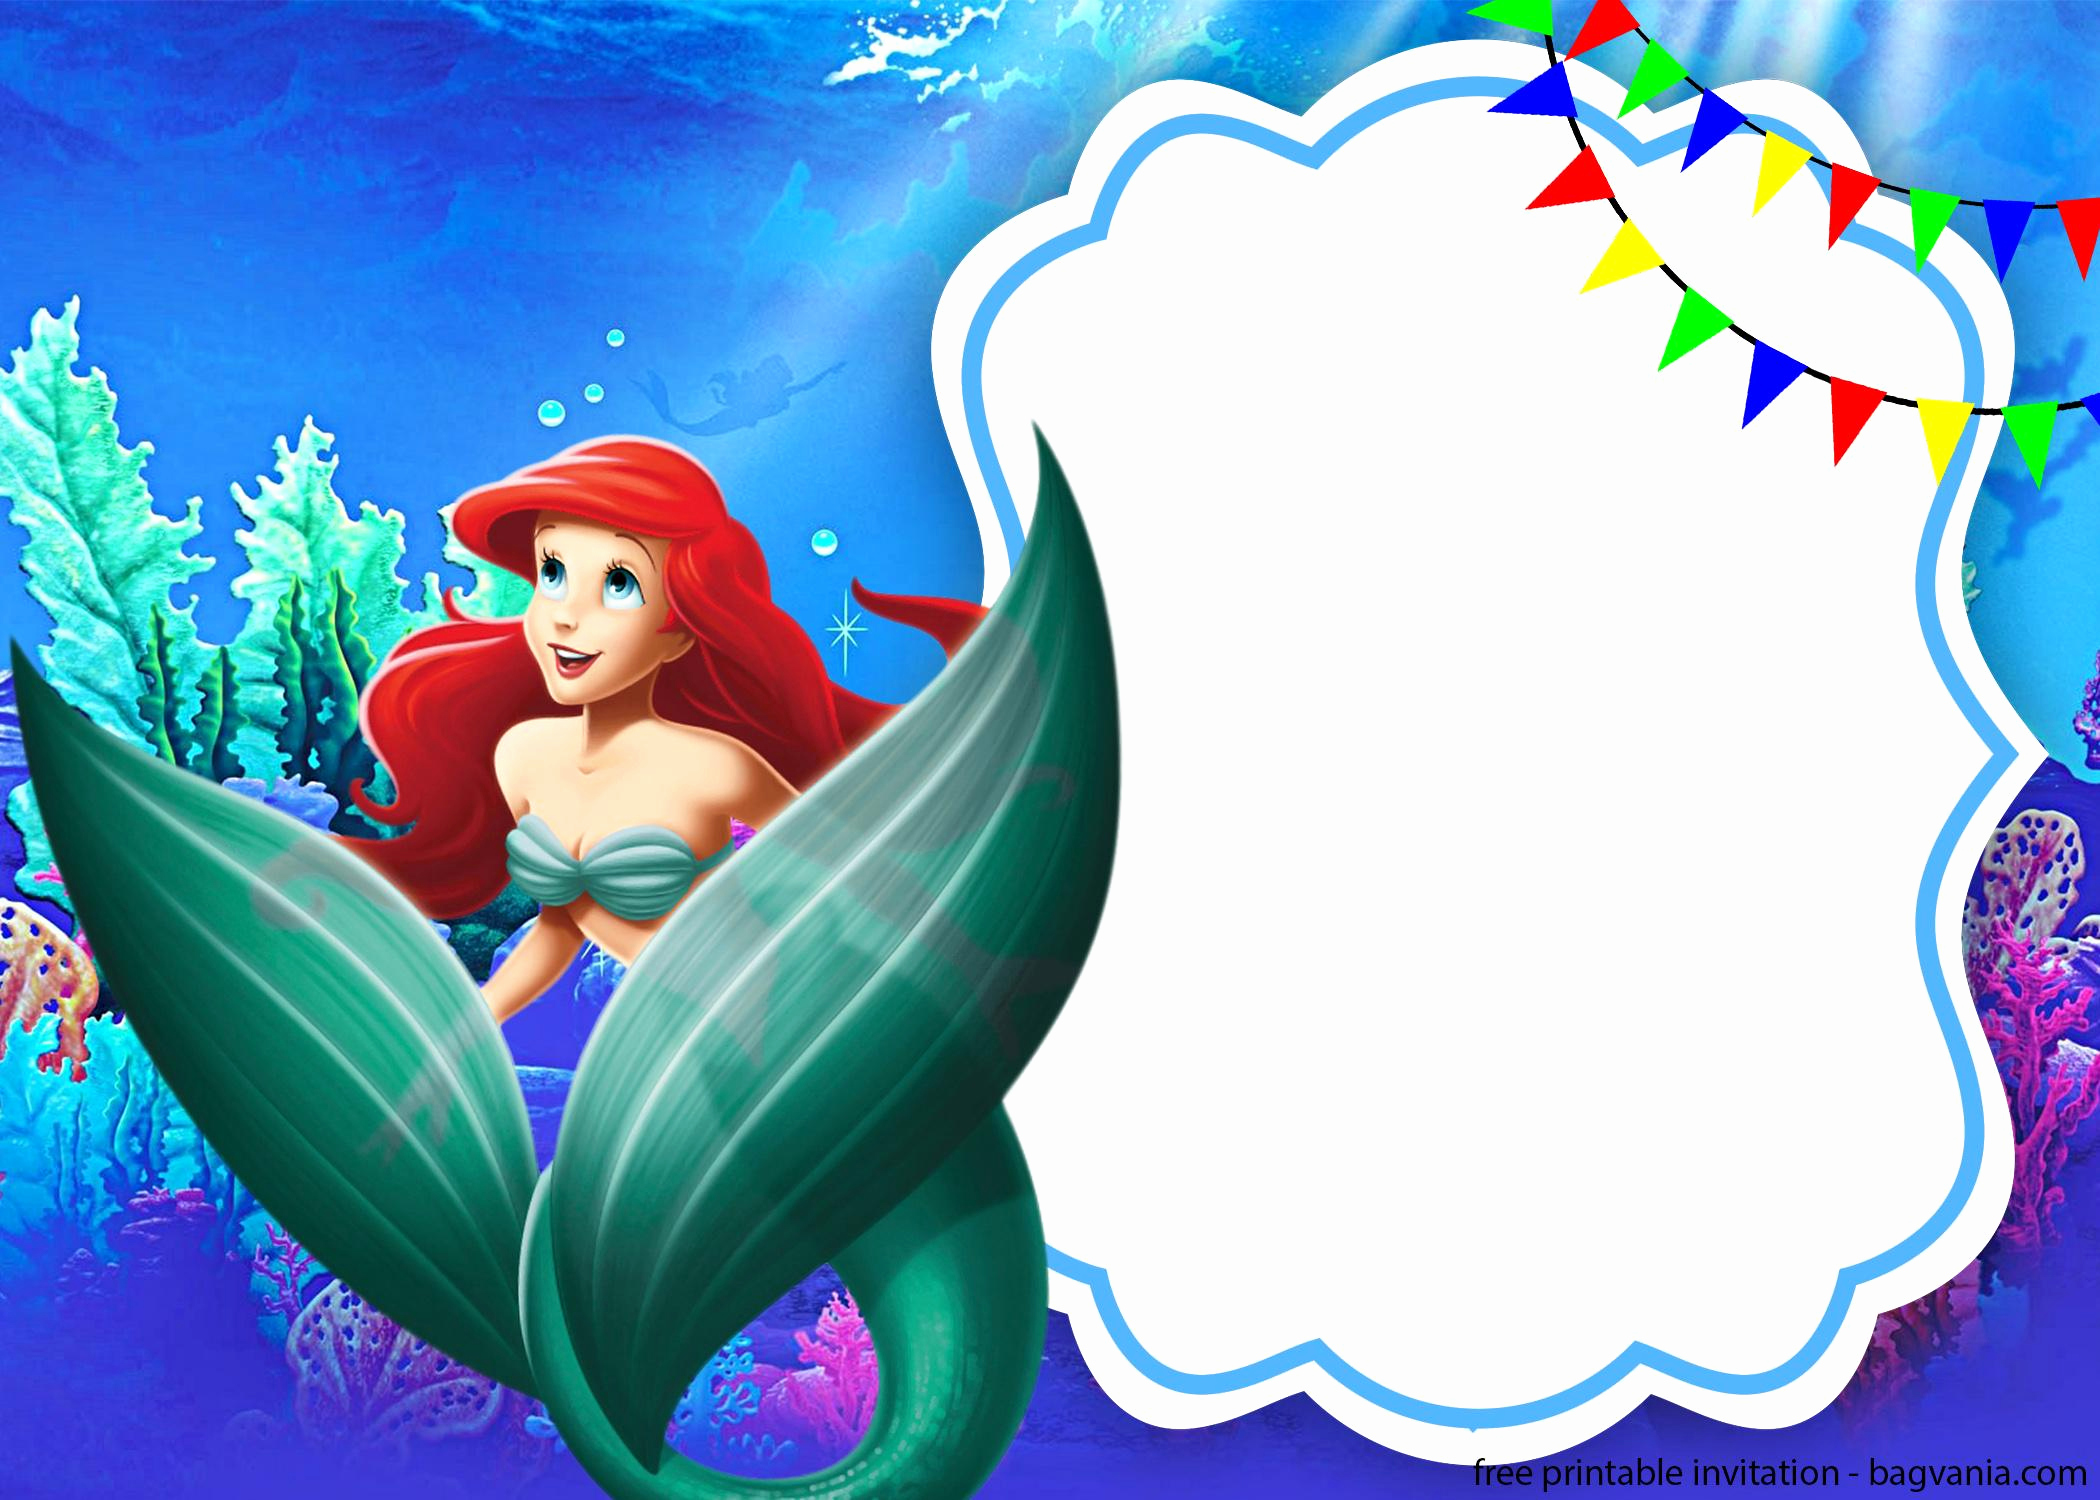 Little Mermaid Birthday Invitation Template Unique Free Ariel the Little Mermaid with Invitation